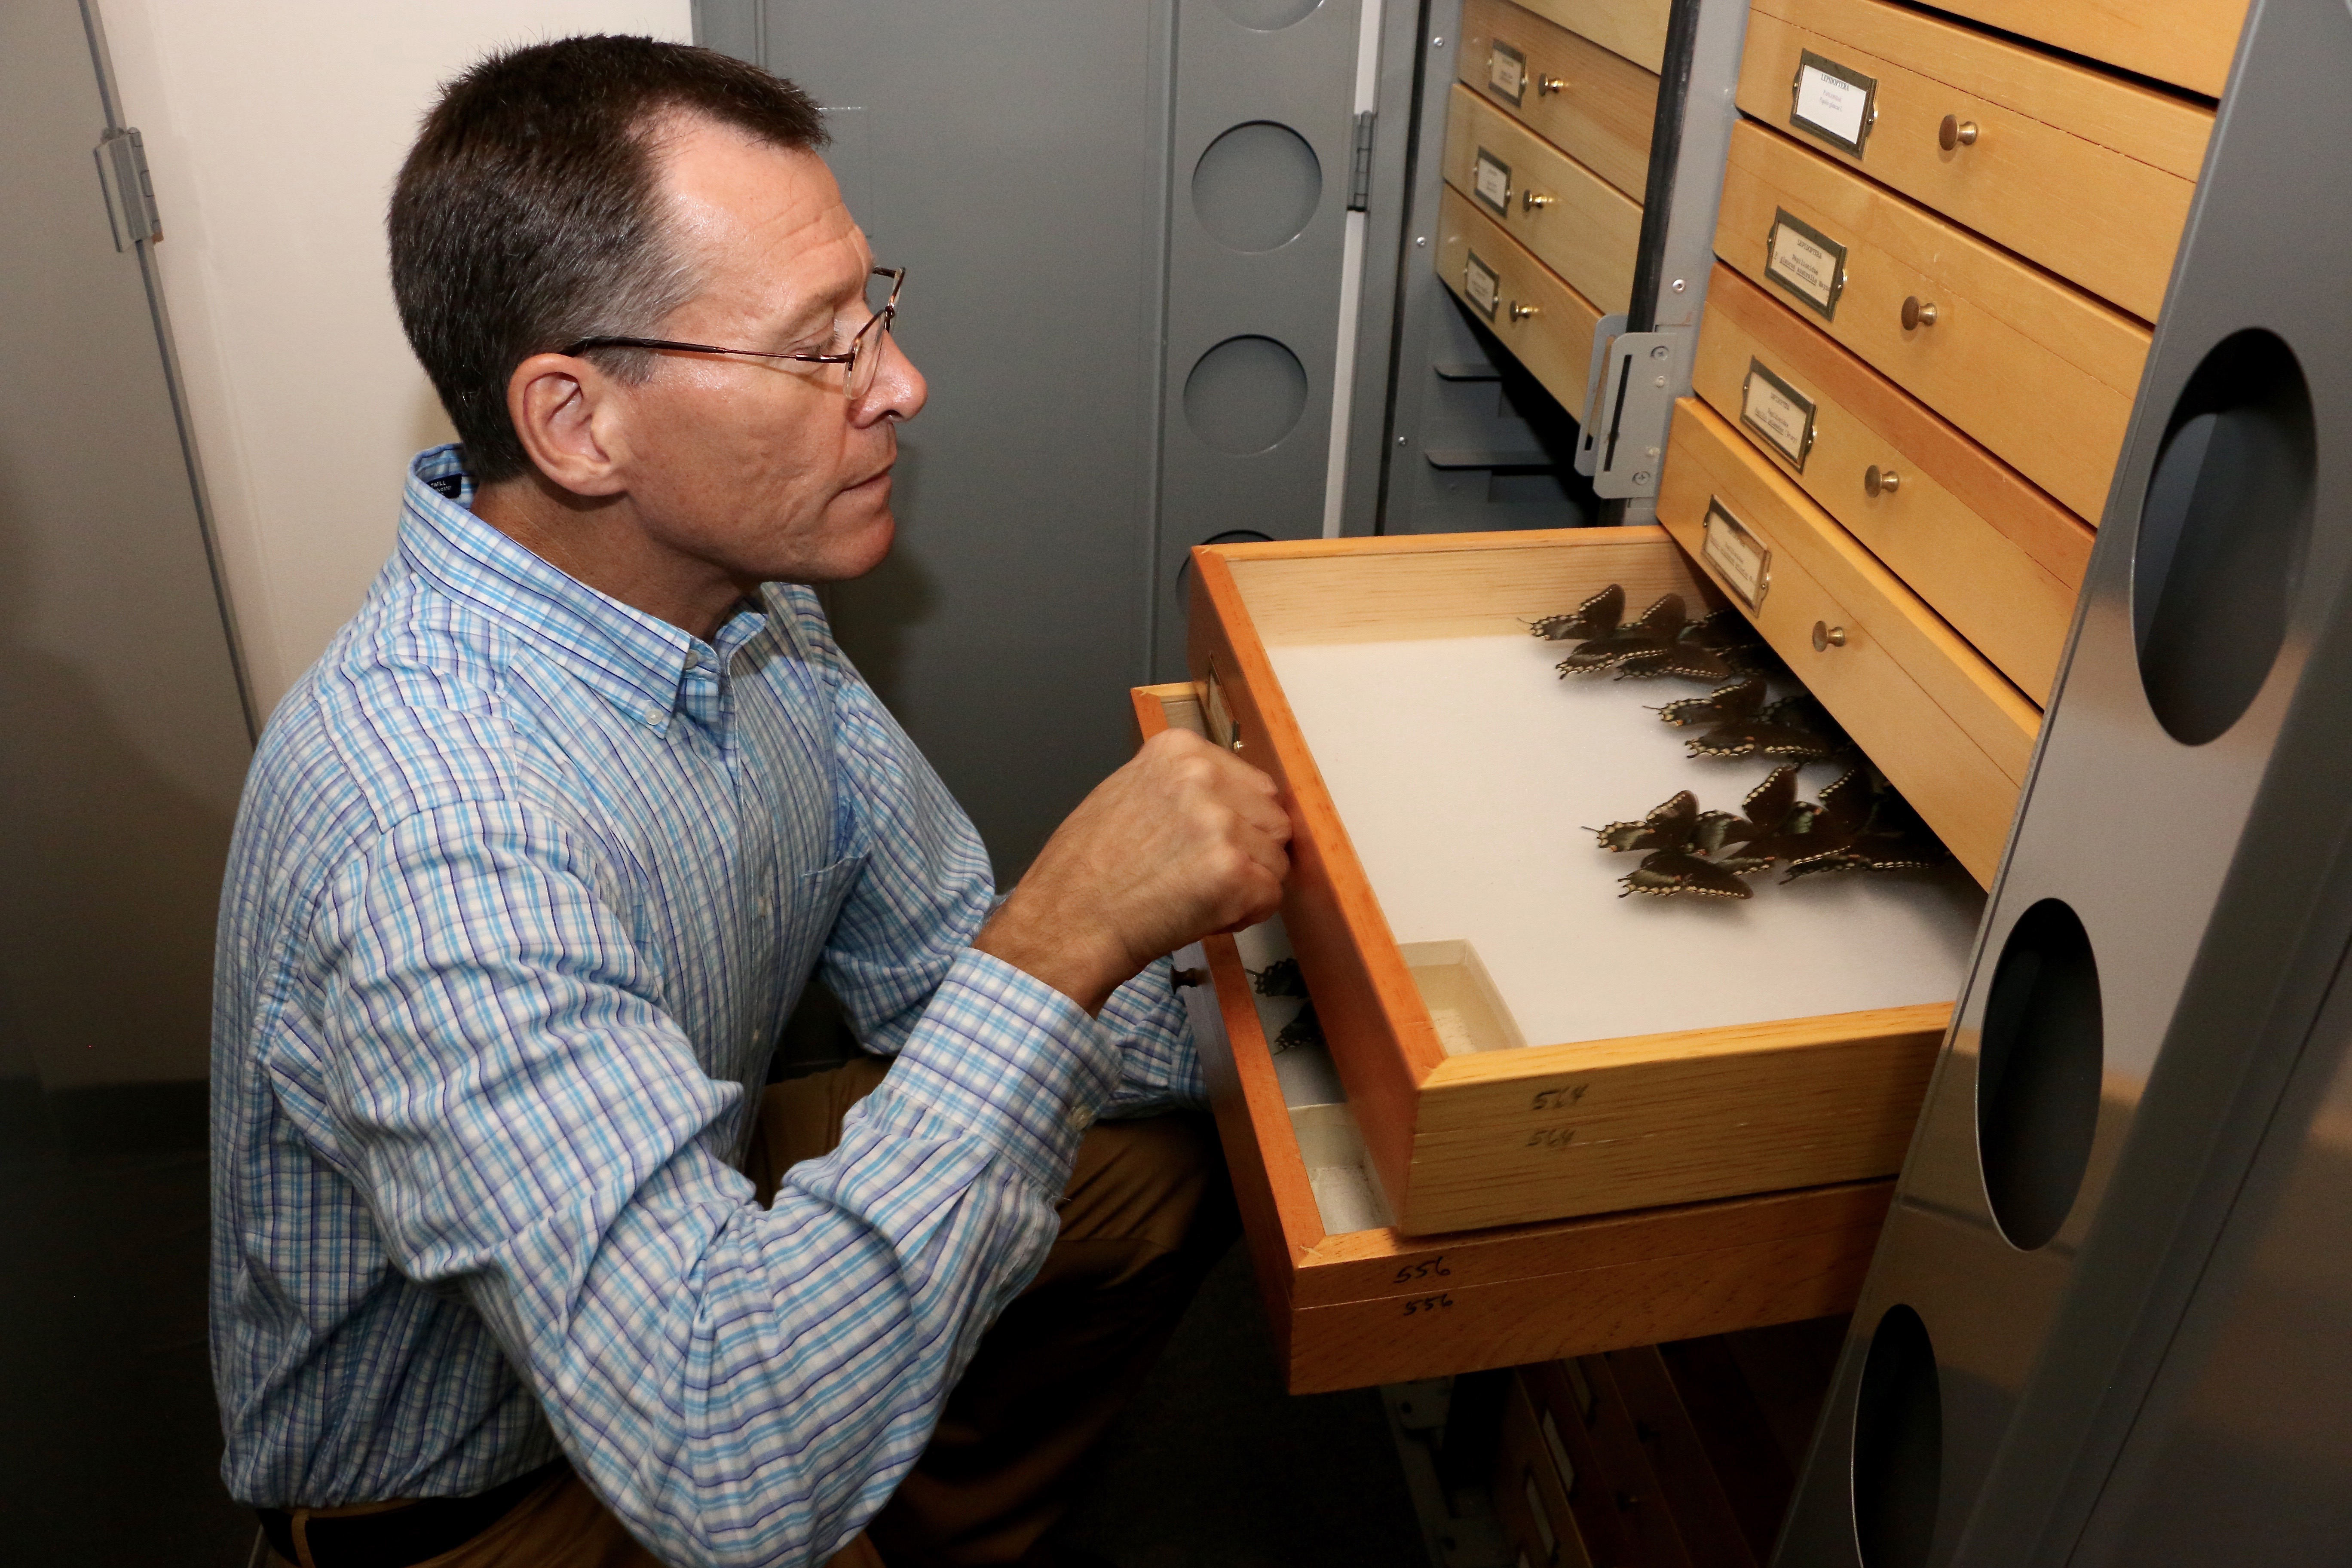 As part of the LepNet project, Joe McHugh, professor of entomology at the UGA College of Agricultural and Environmental Sciences and curator of the arthropod collection at the Georgia Museum of Natural History, will help lead the effort to digitize millions of butterfly and moth specimens now locked away in museum collections across the nation.